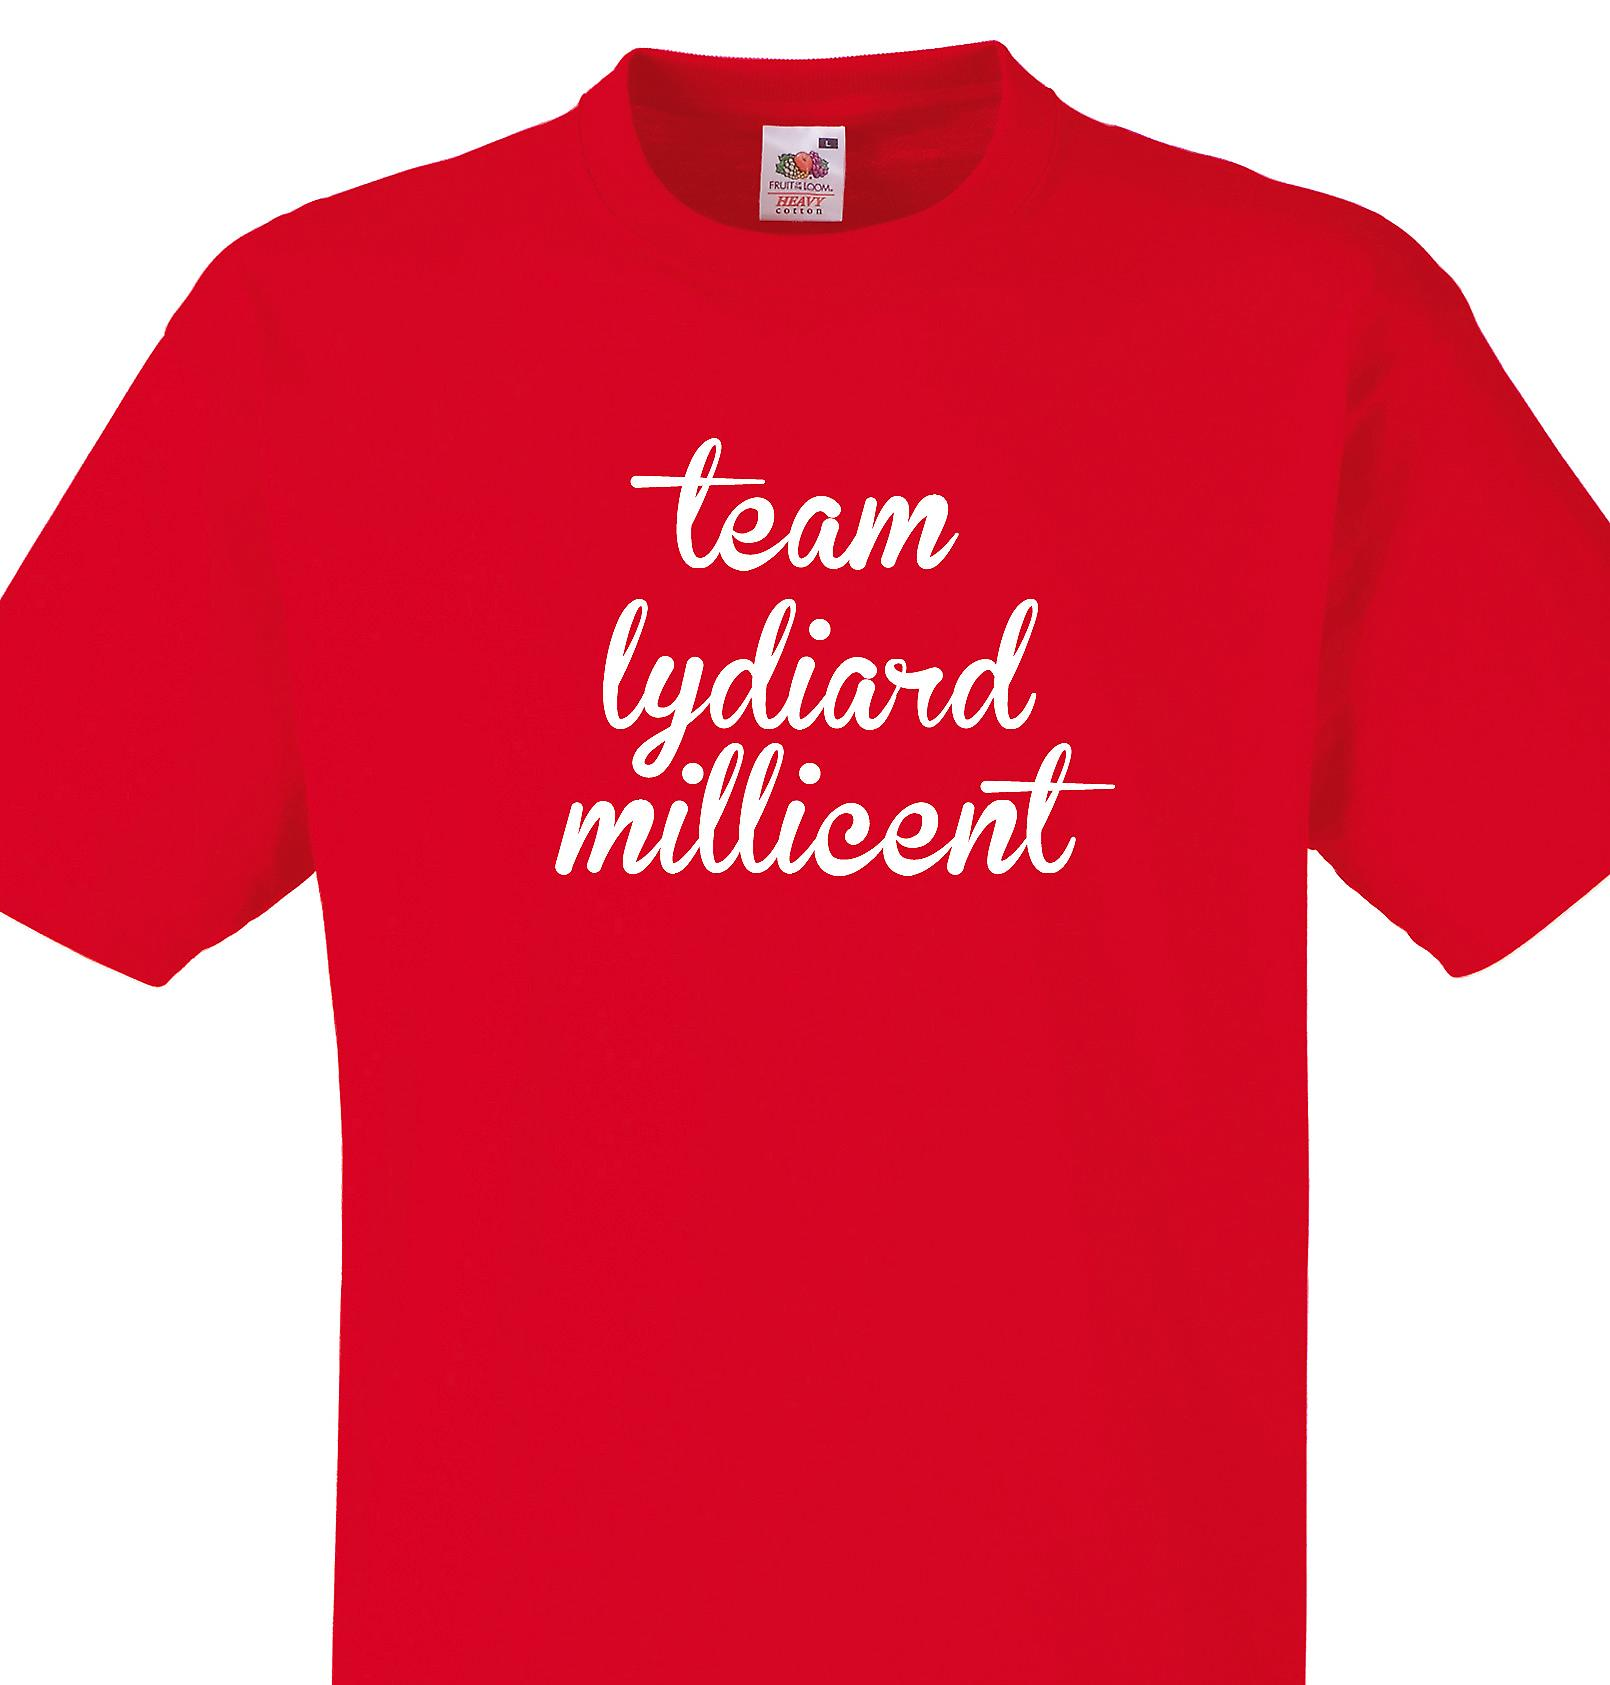 Team Lydiard millicent Red T shirt